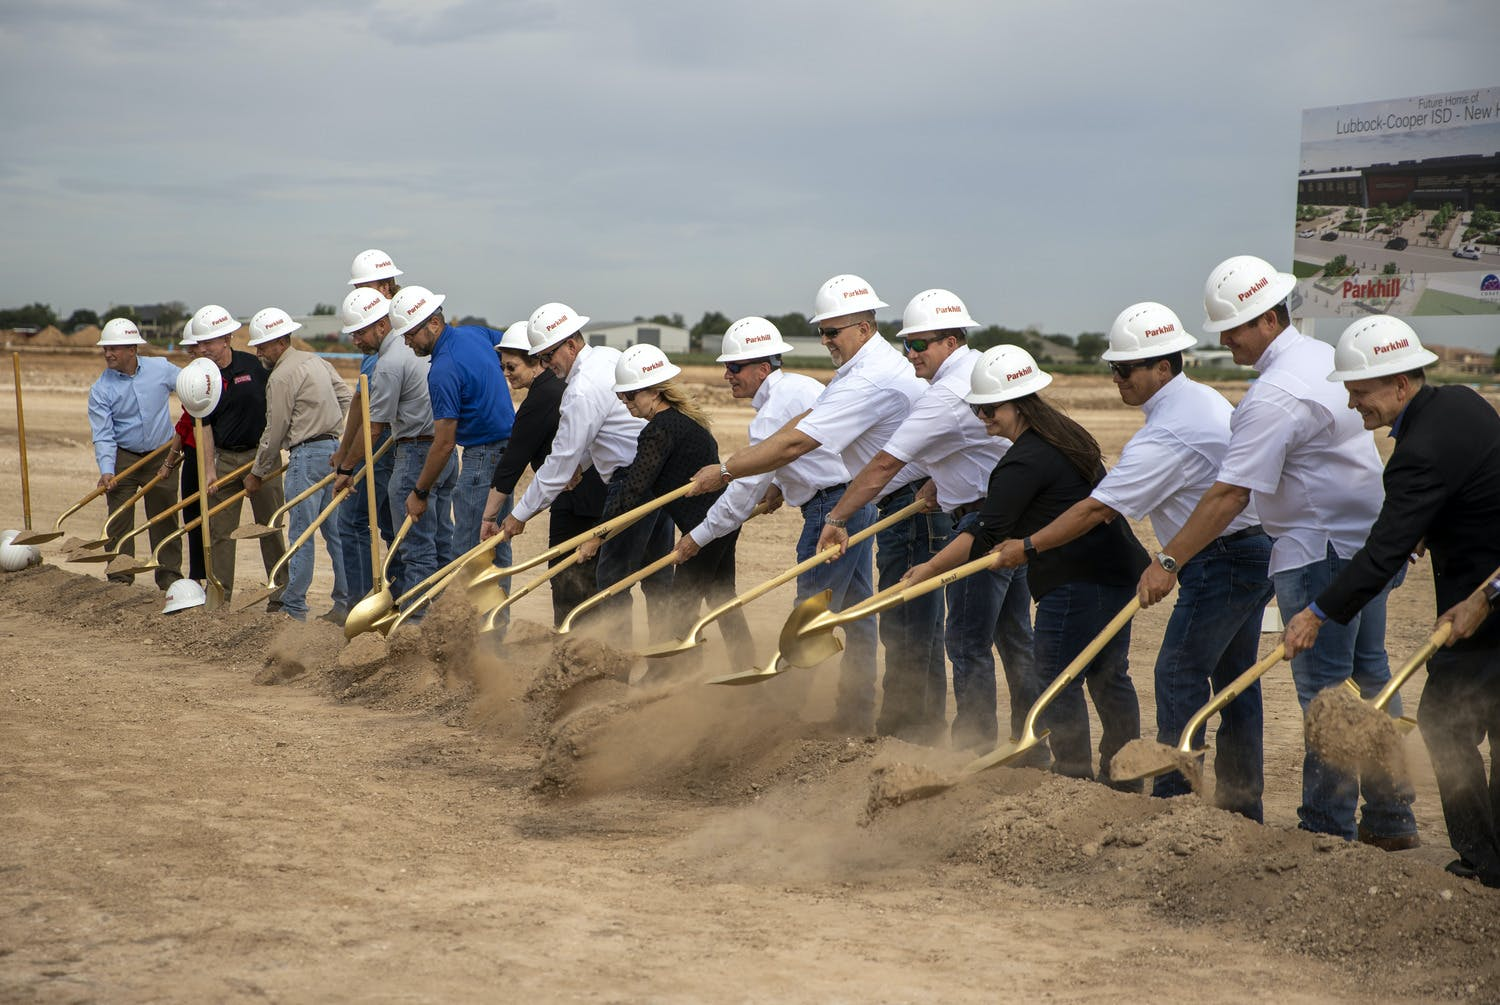 Lubbock Getting New 21st-Century High School cover image